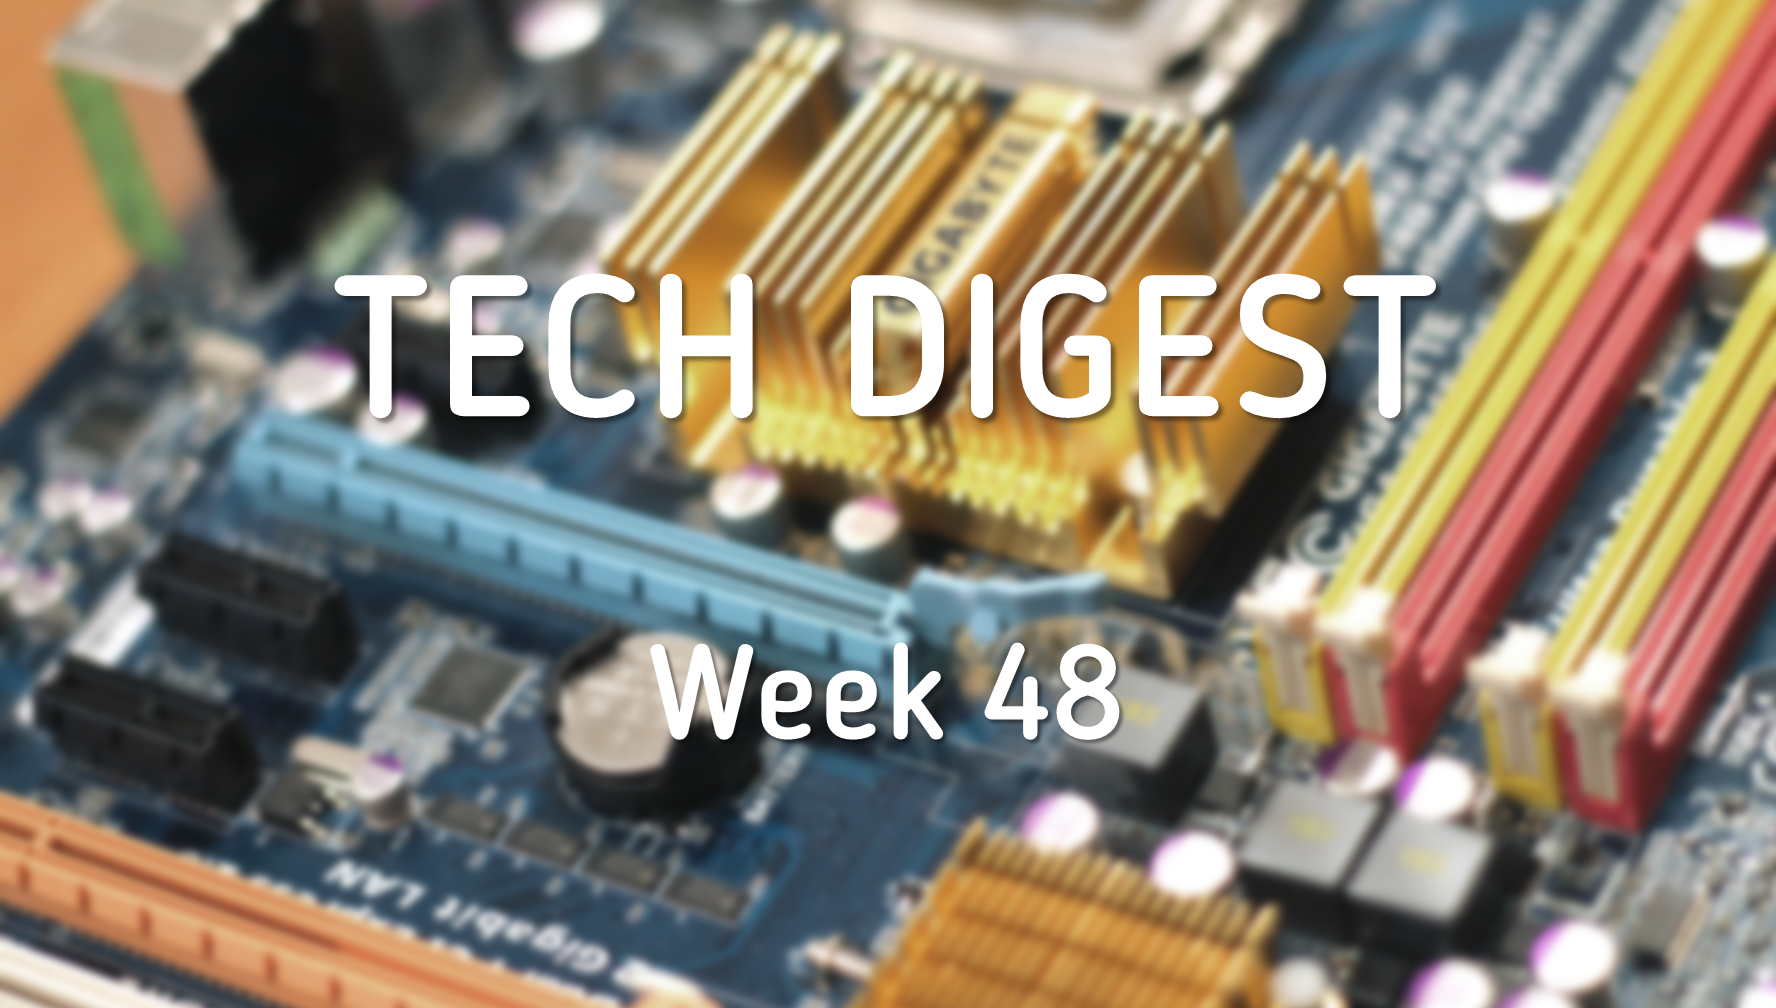 Tech digest, week 48.png